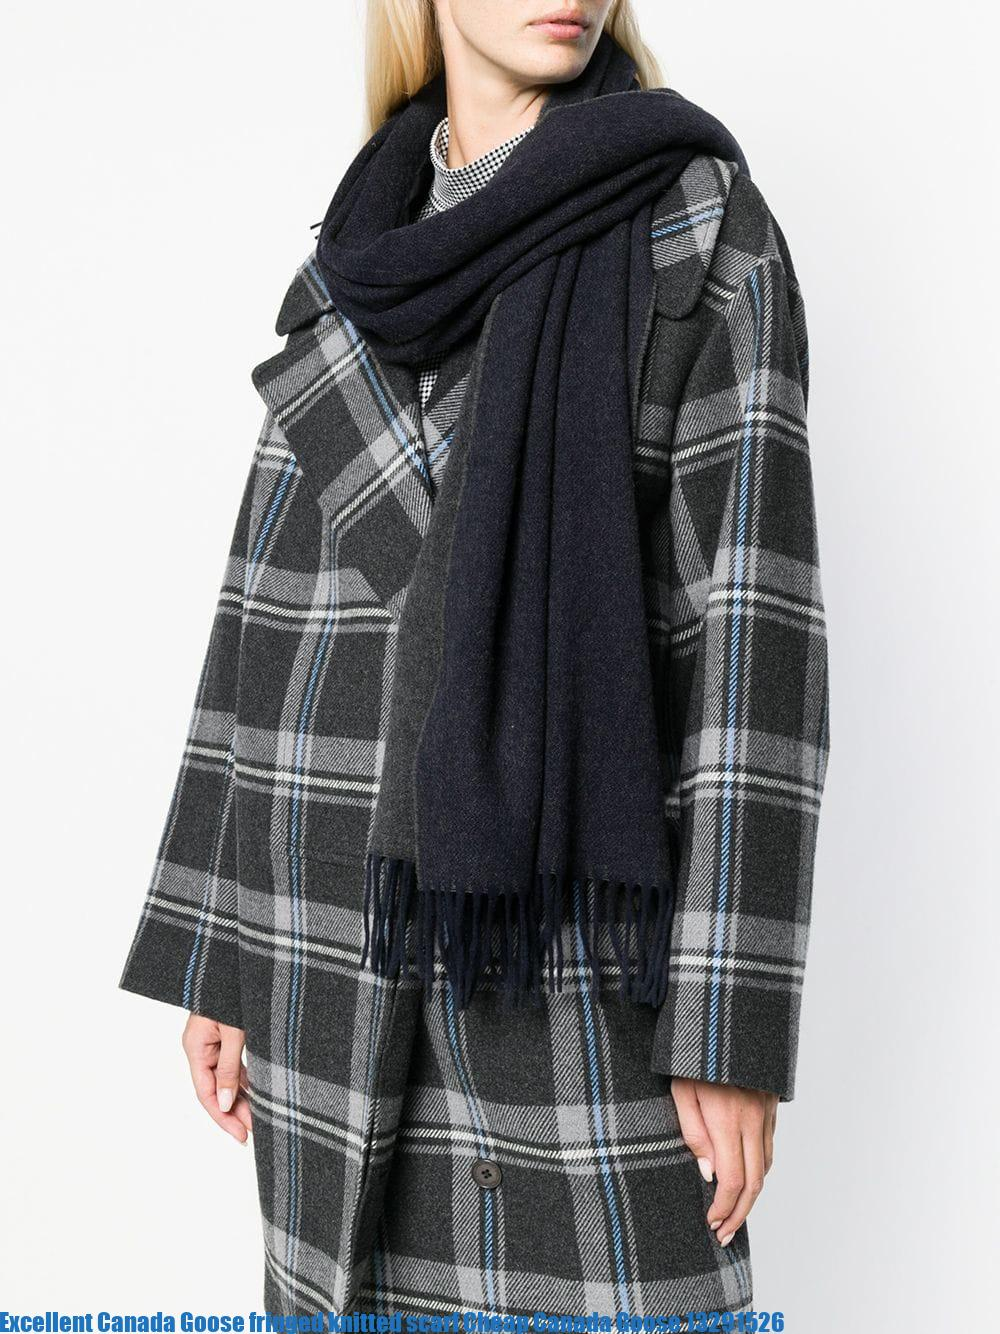 Excellent Canada Goose fringed knitted scarf Cheap Canada Goose 13291526